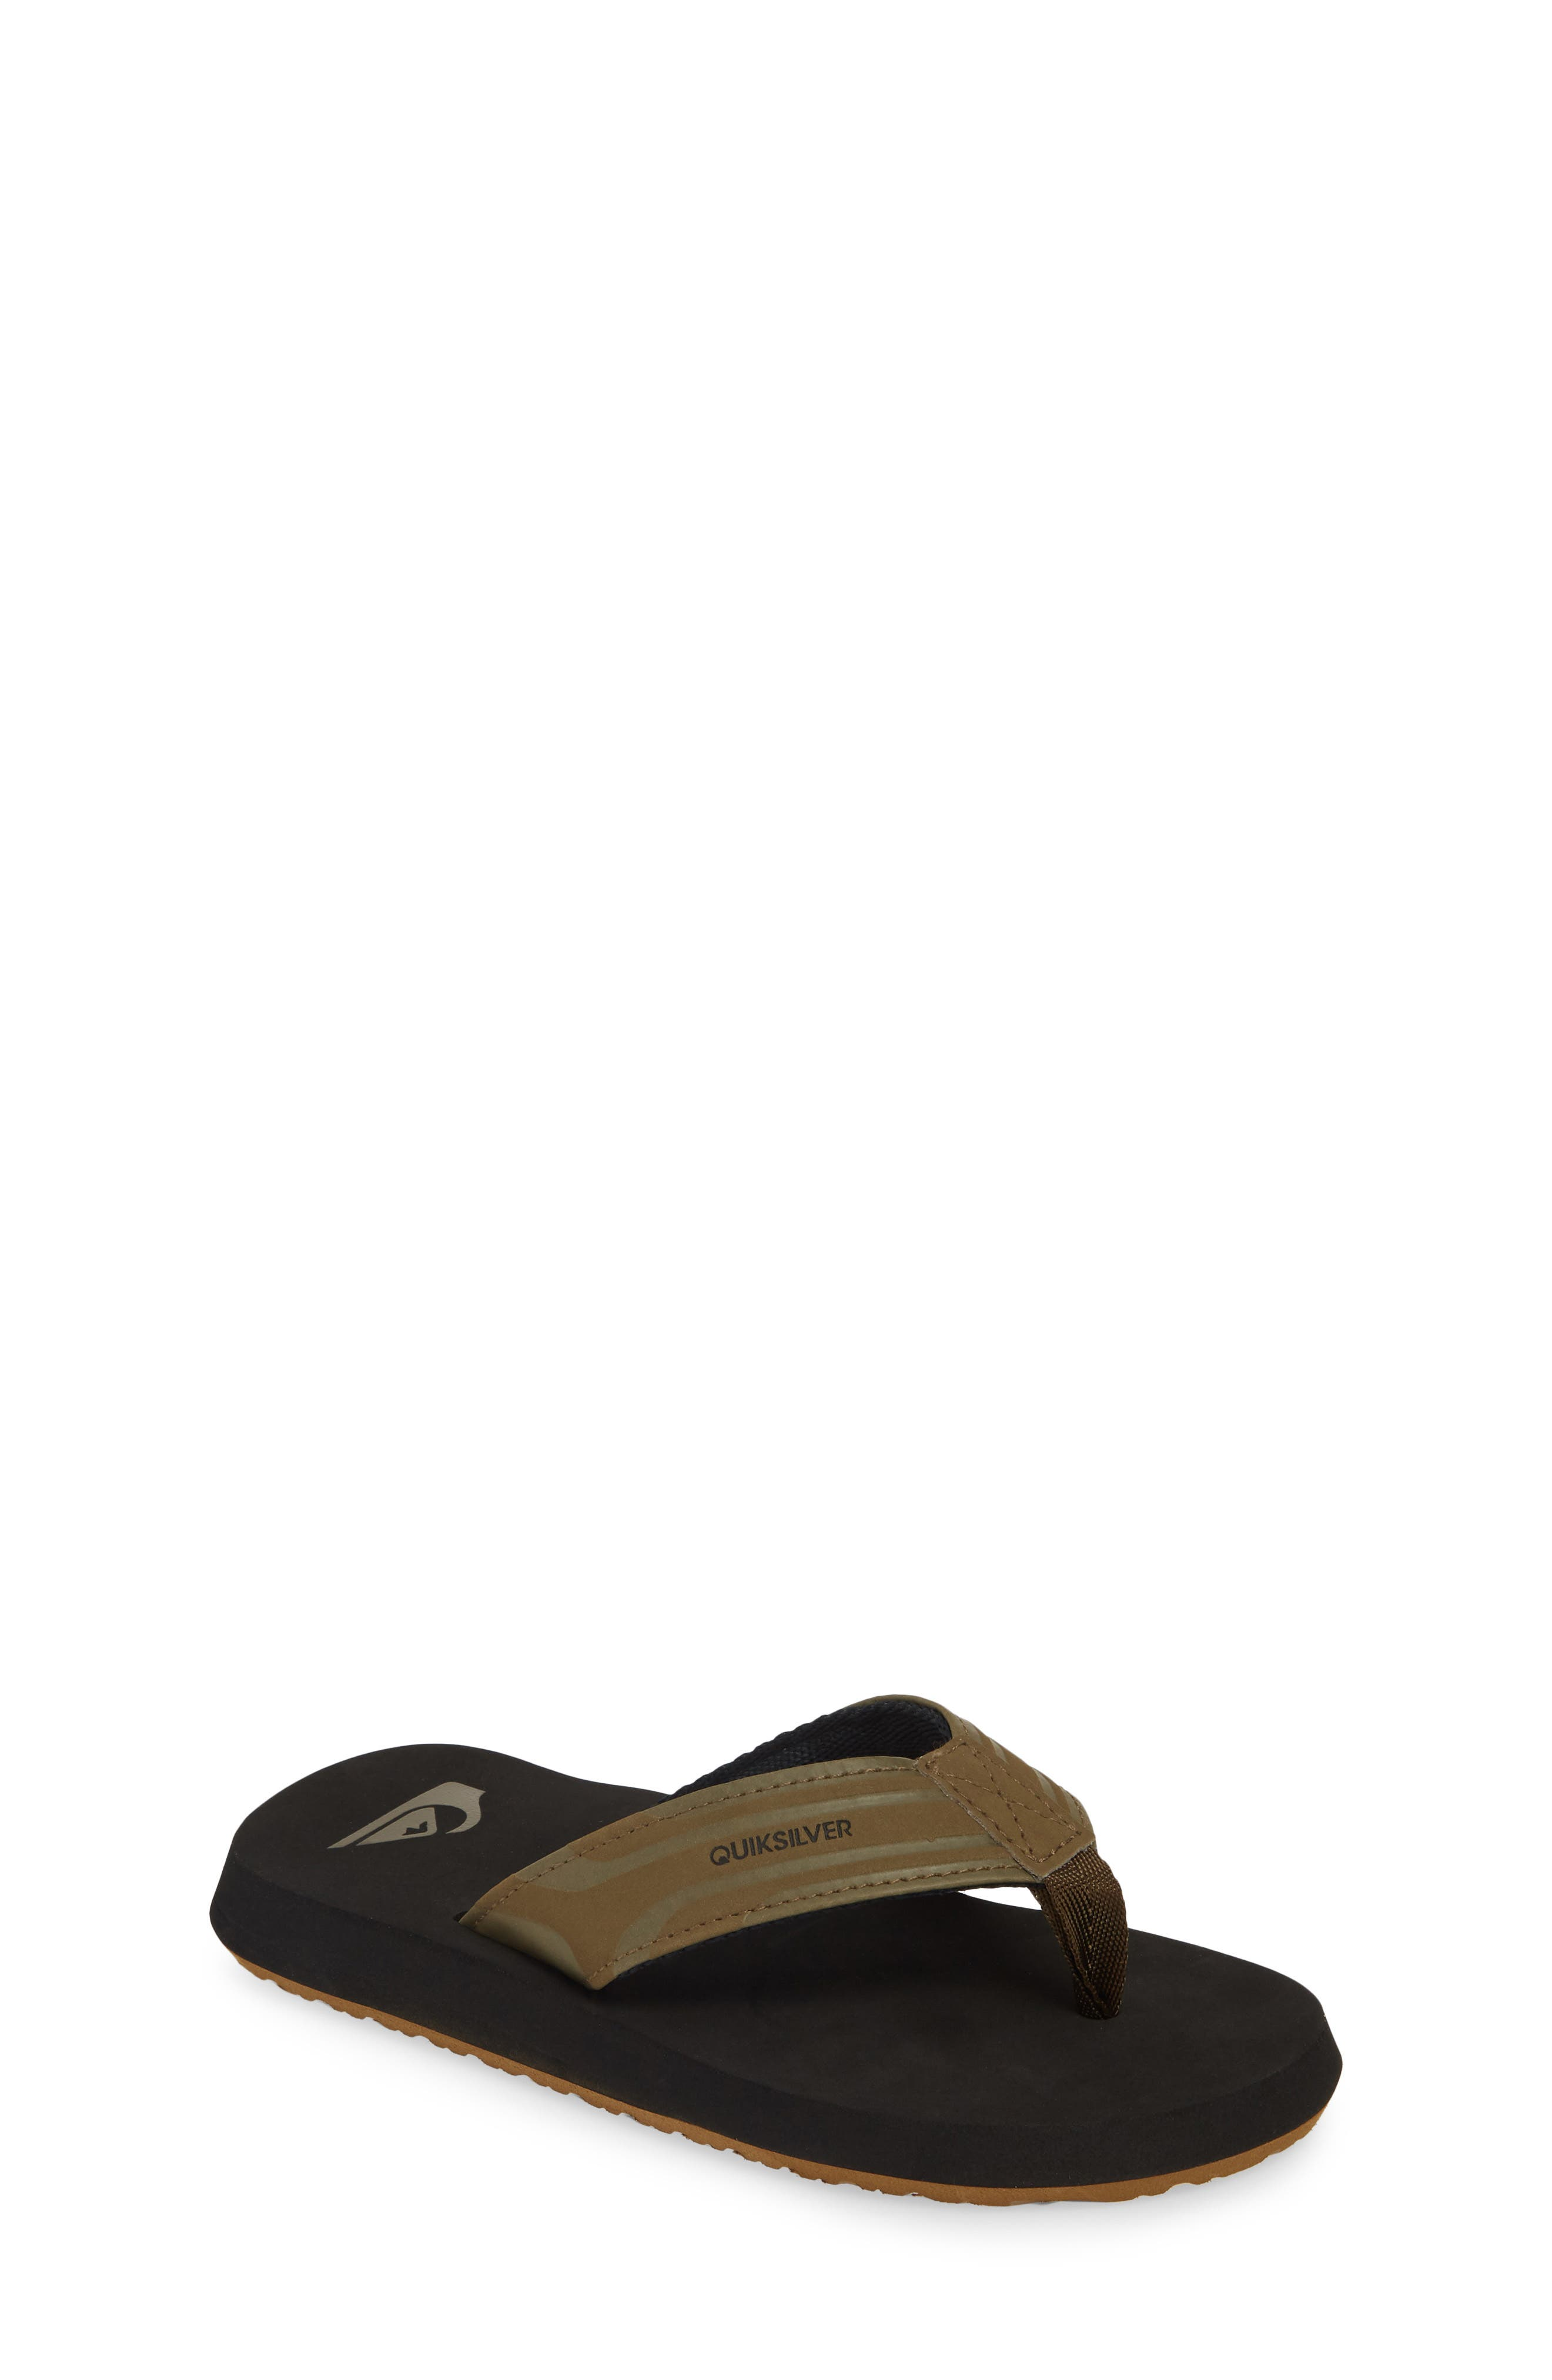 QUIKSILVER Monkey Wrench Flip Flop, Main, color, TAN